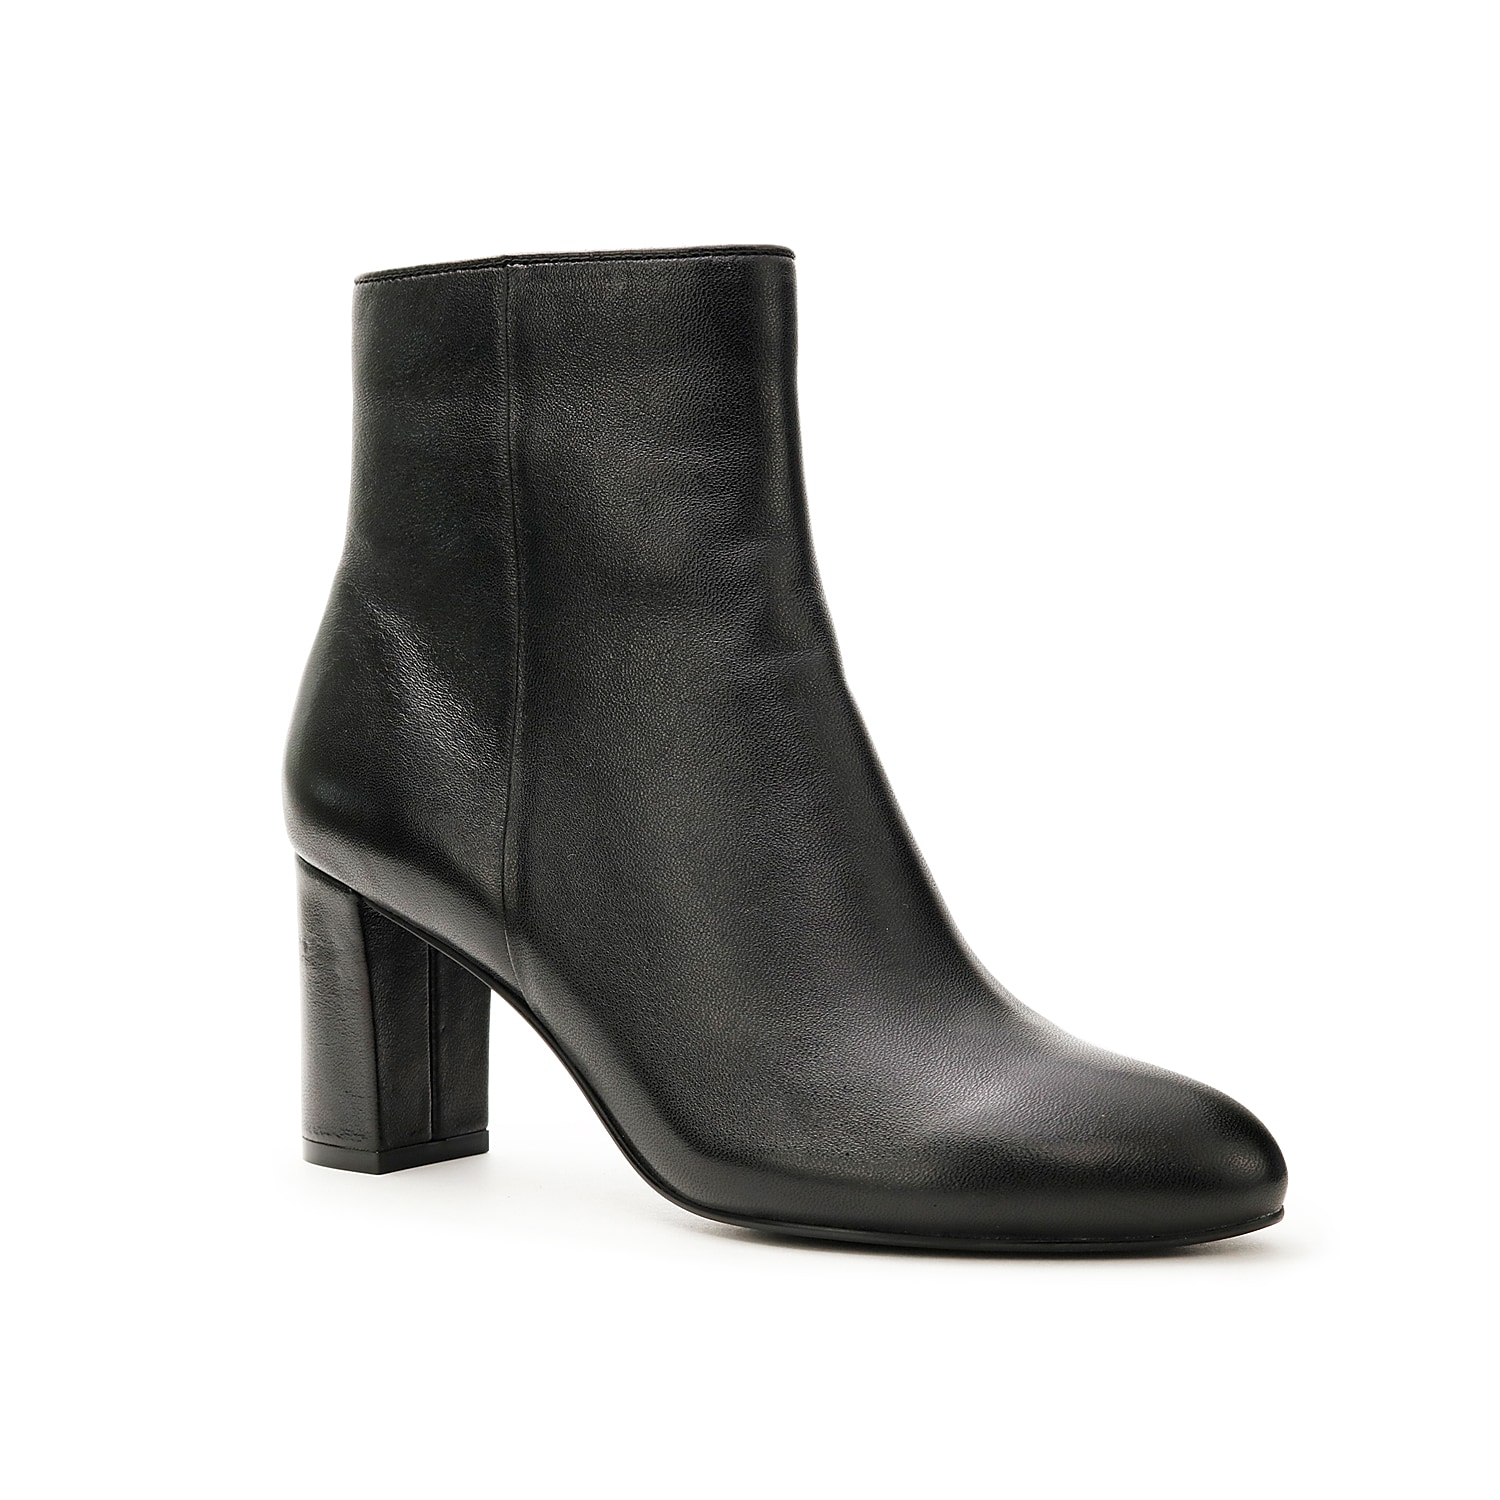 Keep it classy with the Atlas bootie from David Tate. Rich leather upper with smooth almond toe and side zipper is elevated by a matching block heel for a simple yet sophisticated look.Click here for Boot Measuring Guide.